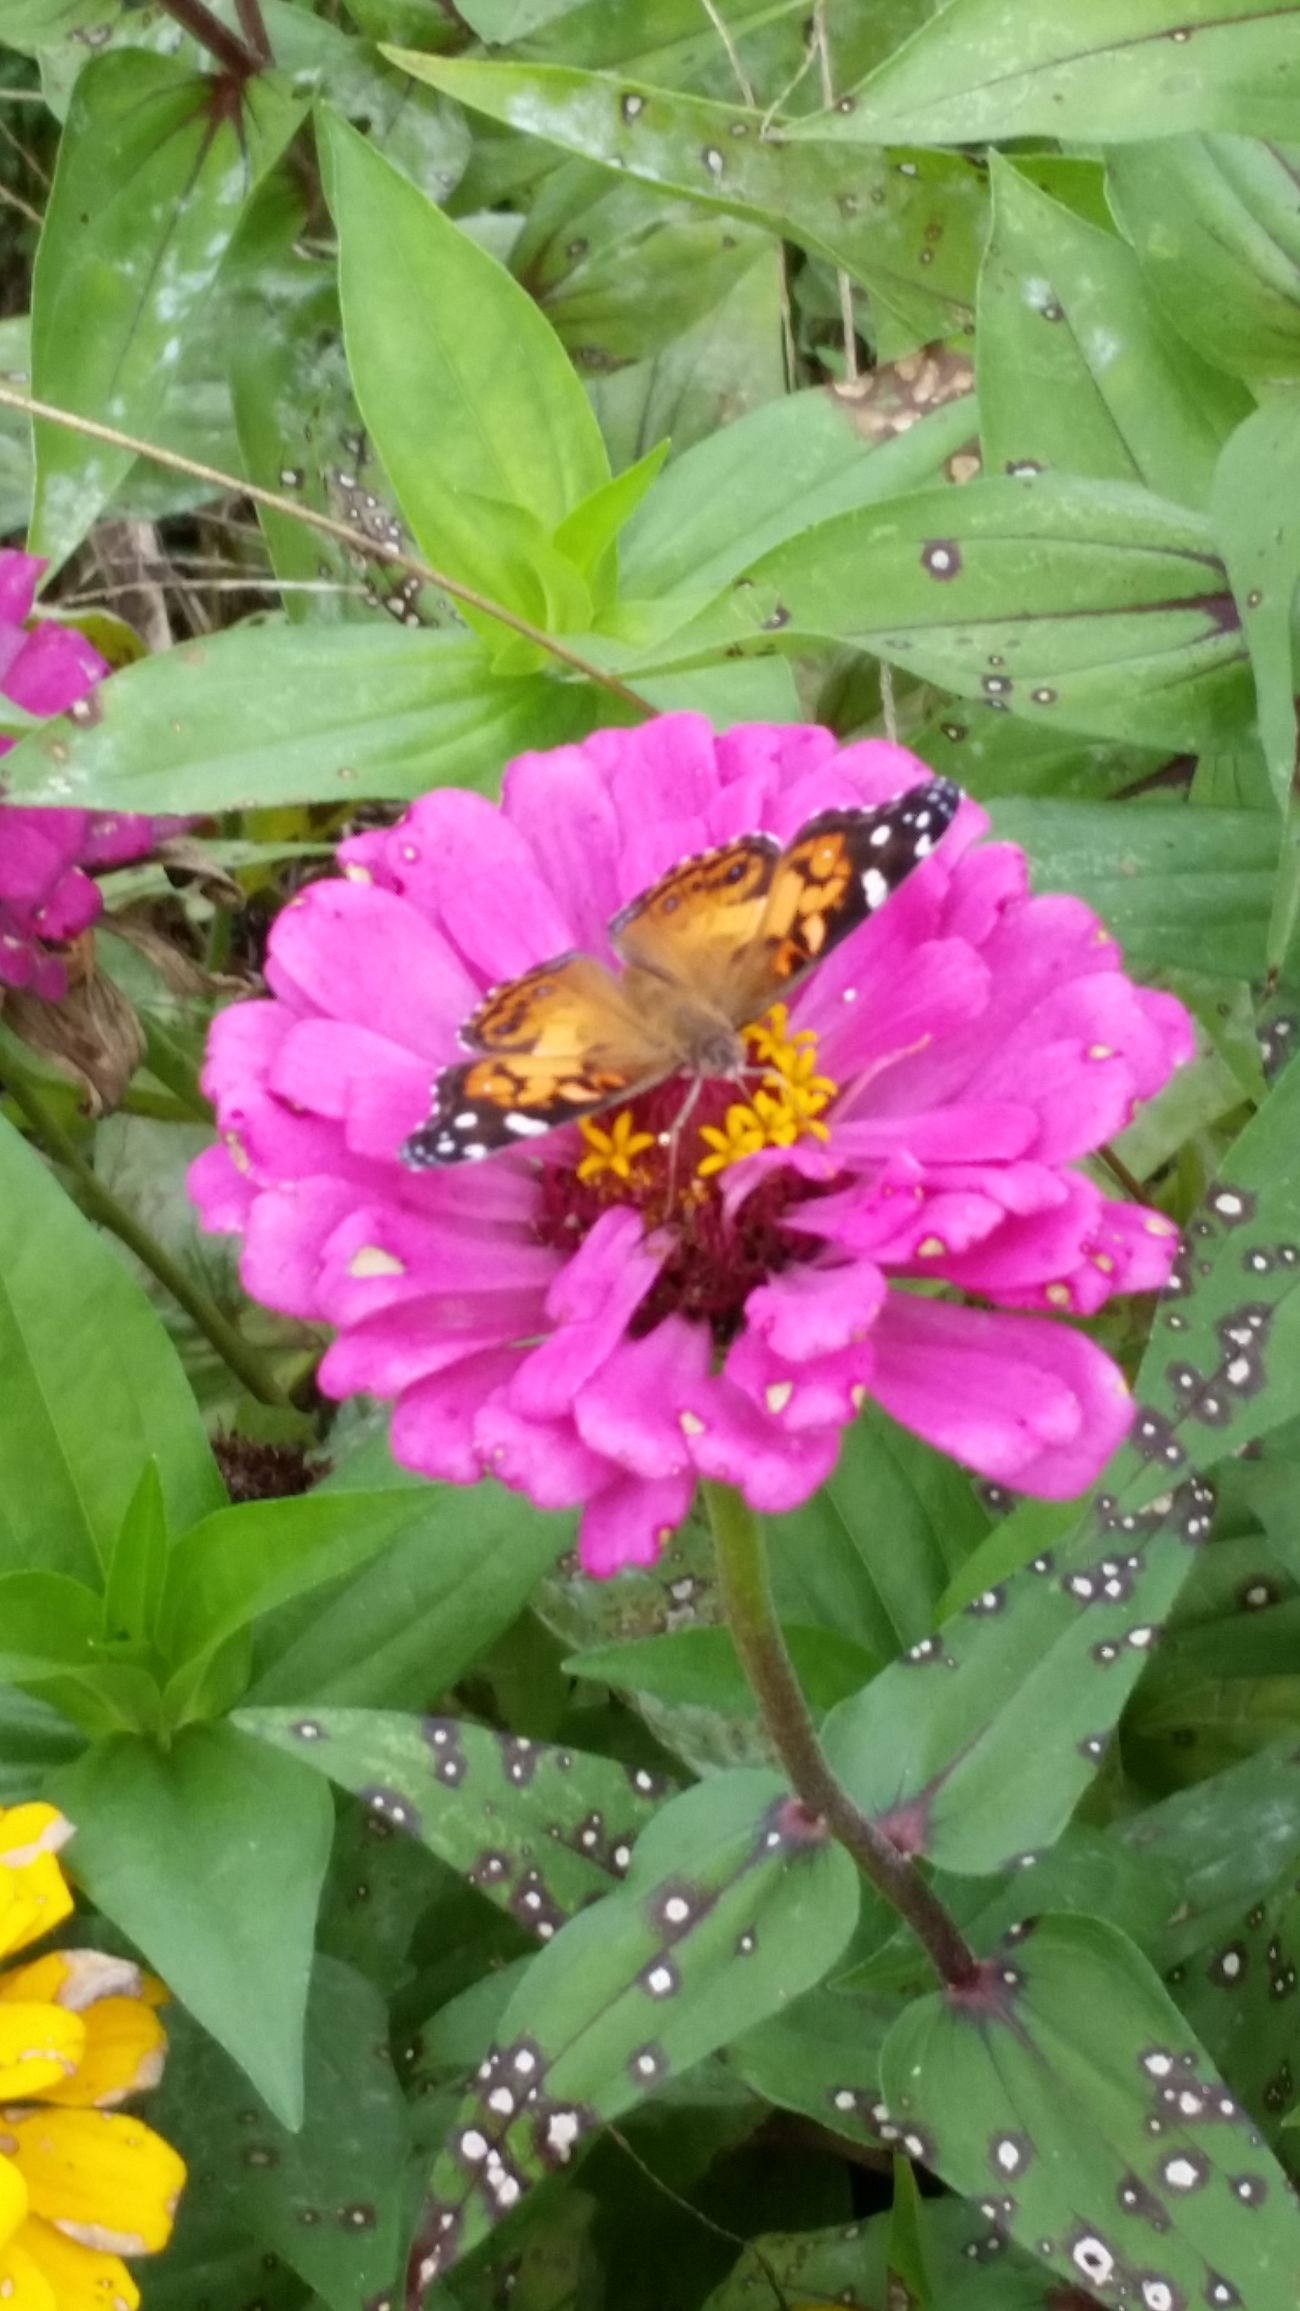 Butterfly Pitstop Butterfly Ujustgotkaied Nature Flowers Petals Bright